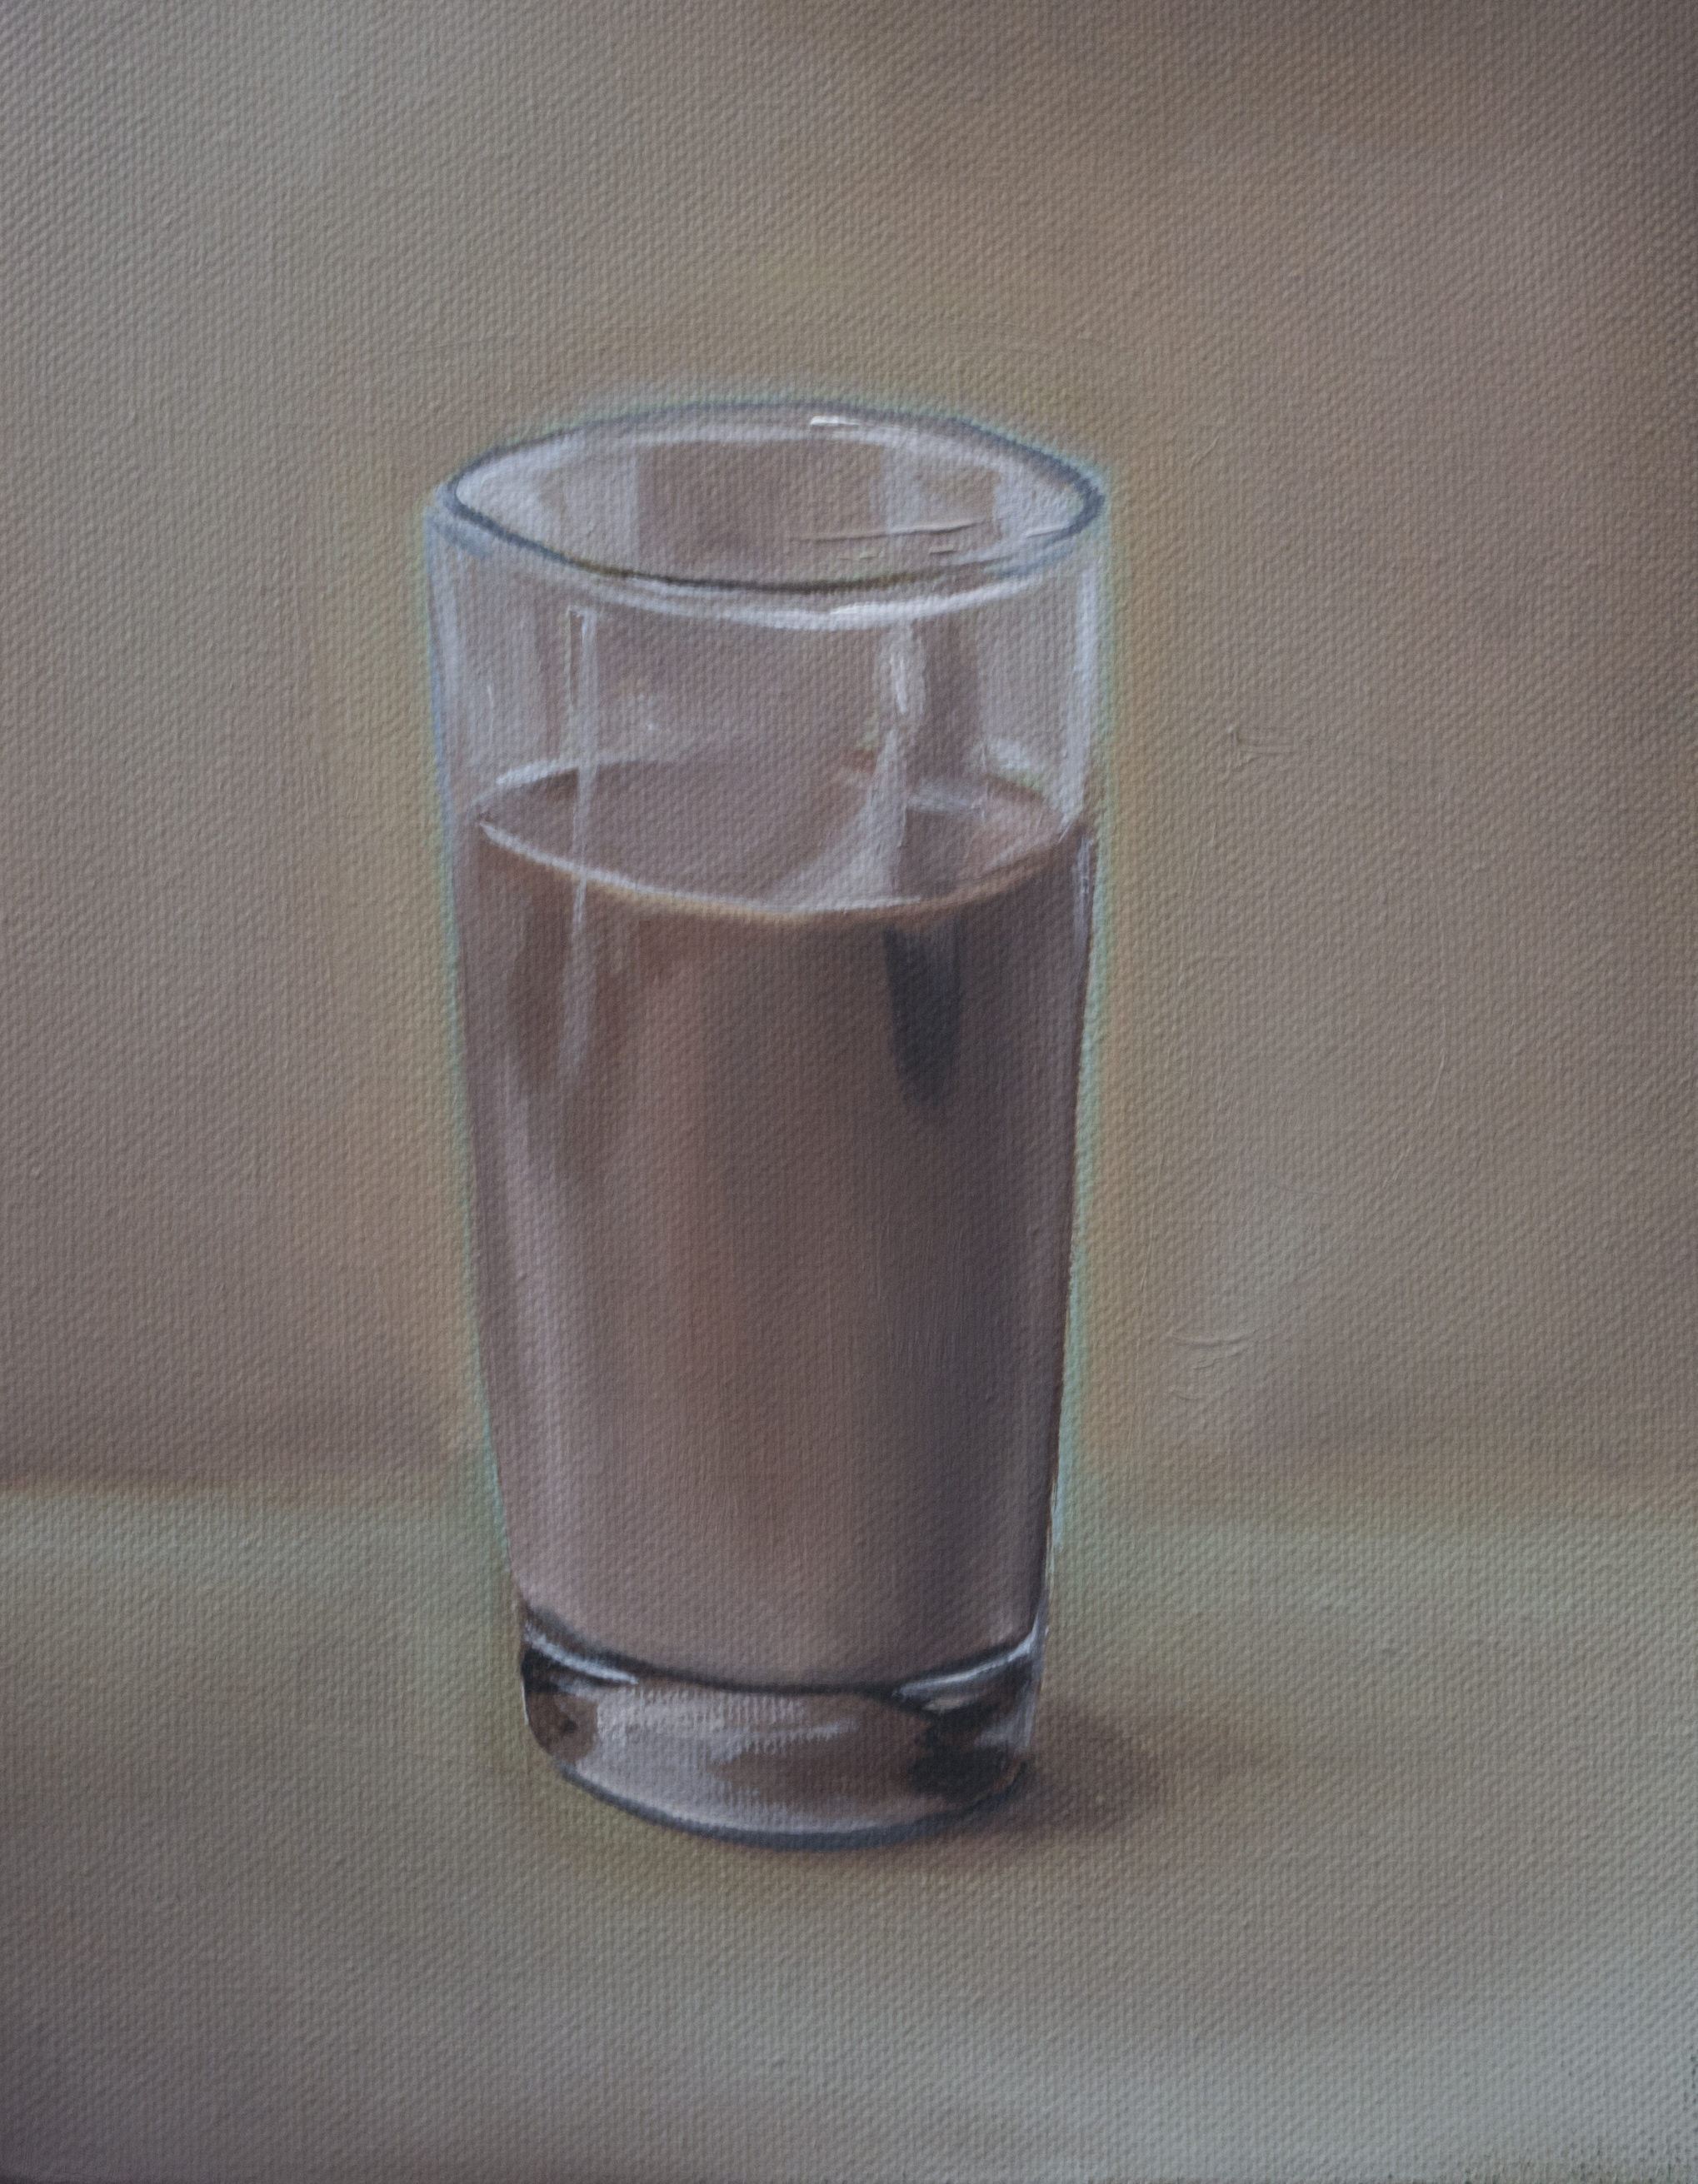 Untitled © (study of milk glass)